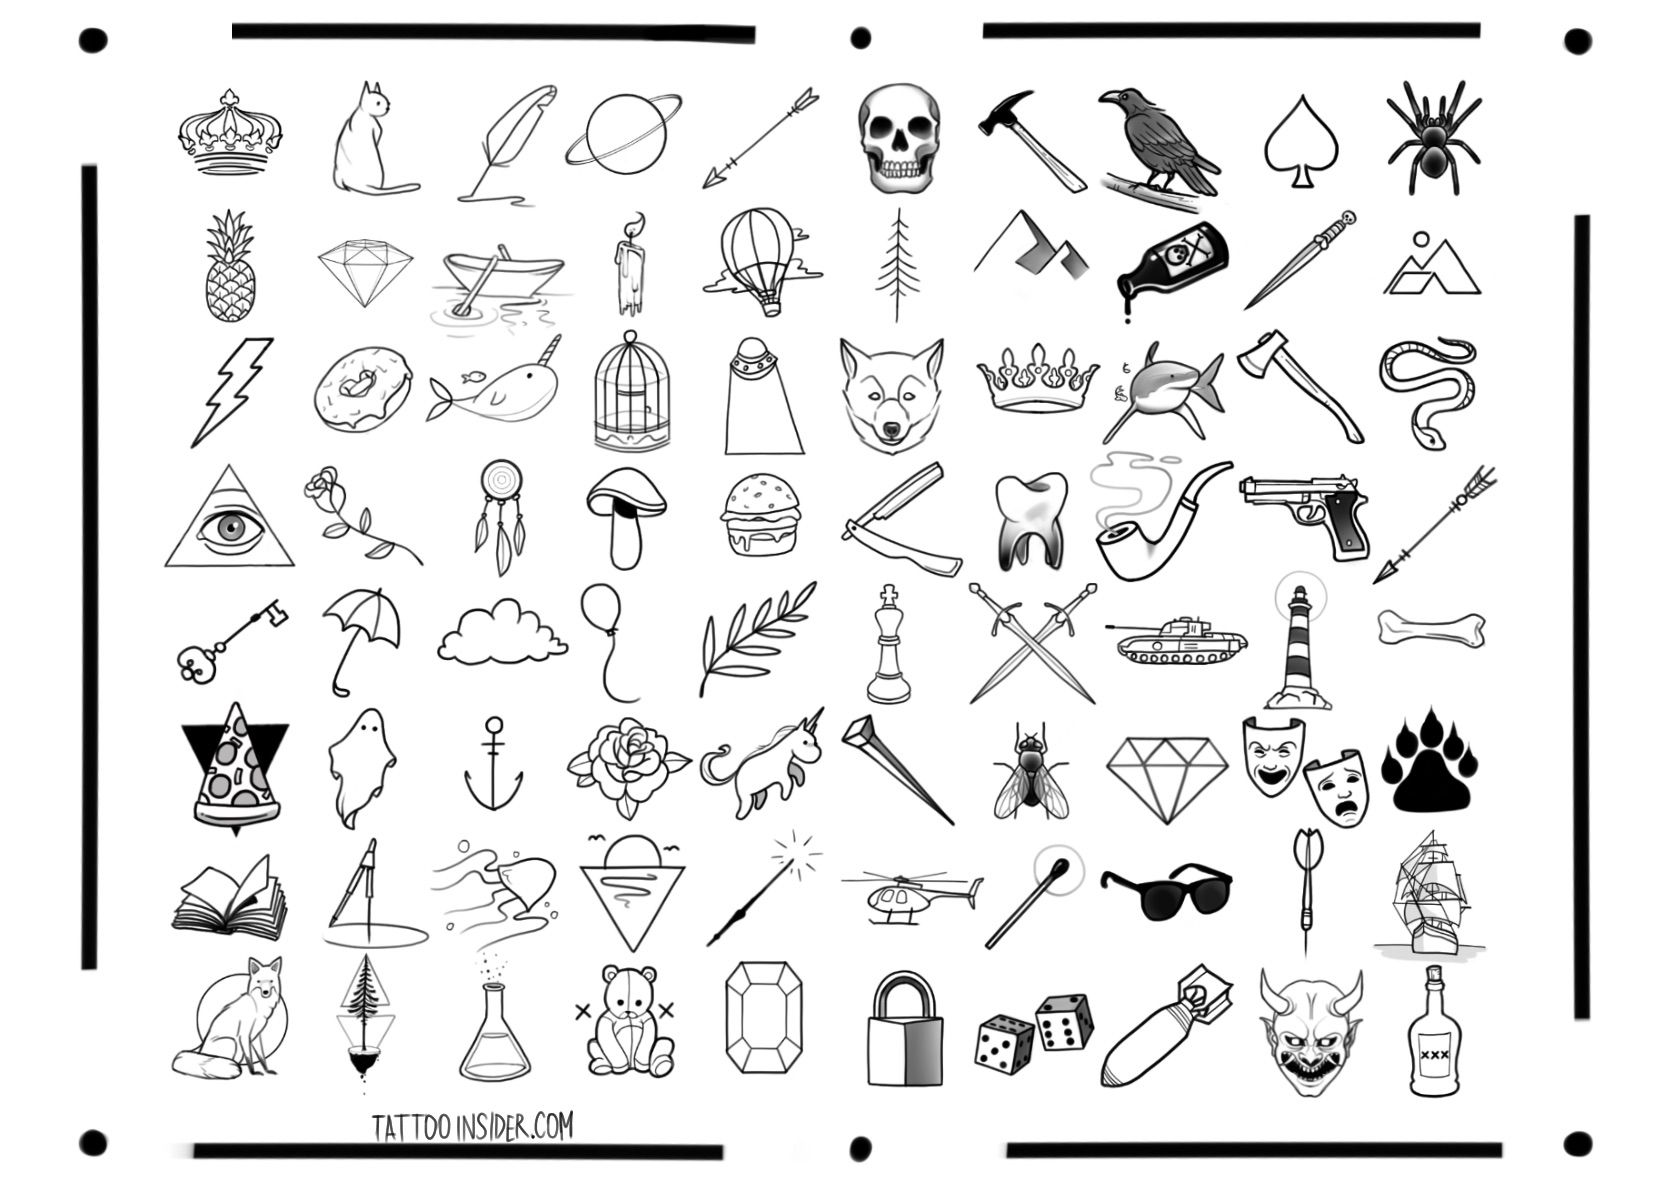 80 Free Small Tattoo Designs (With Images)